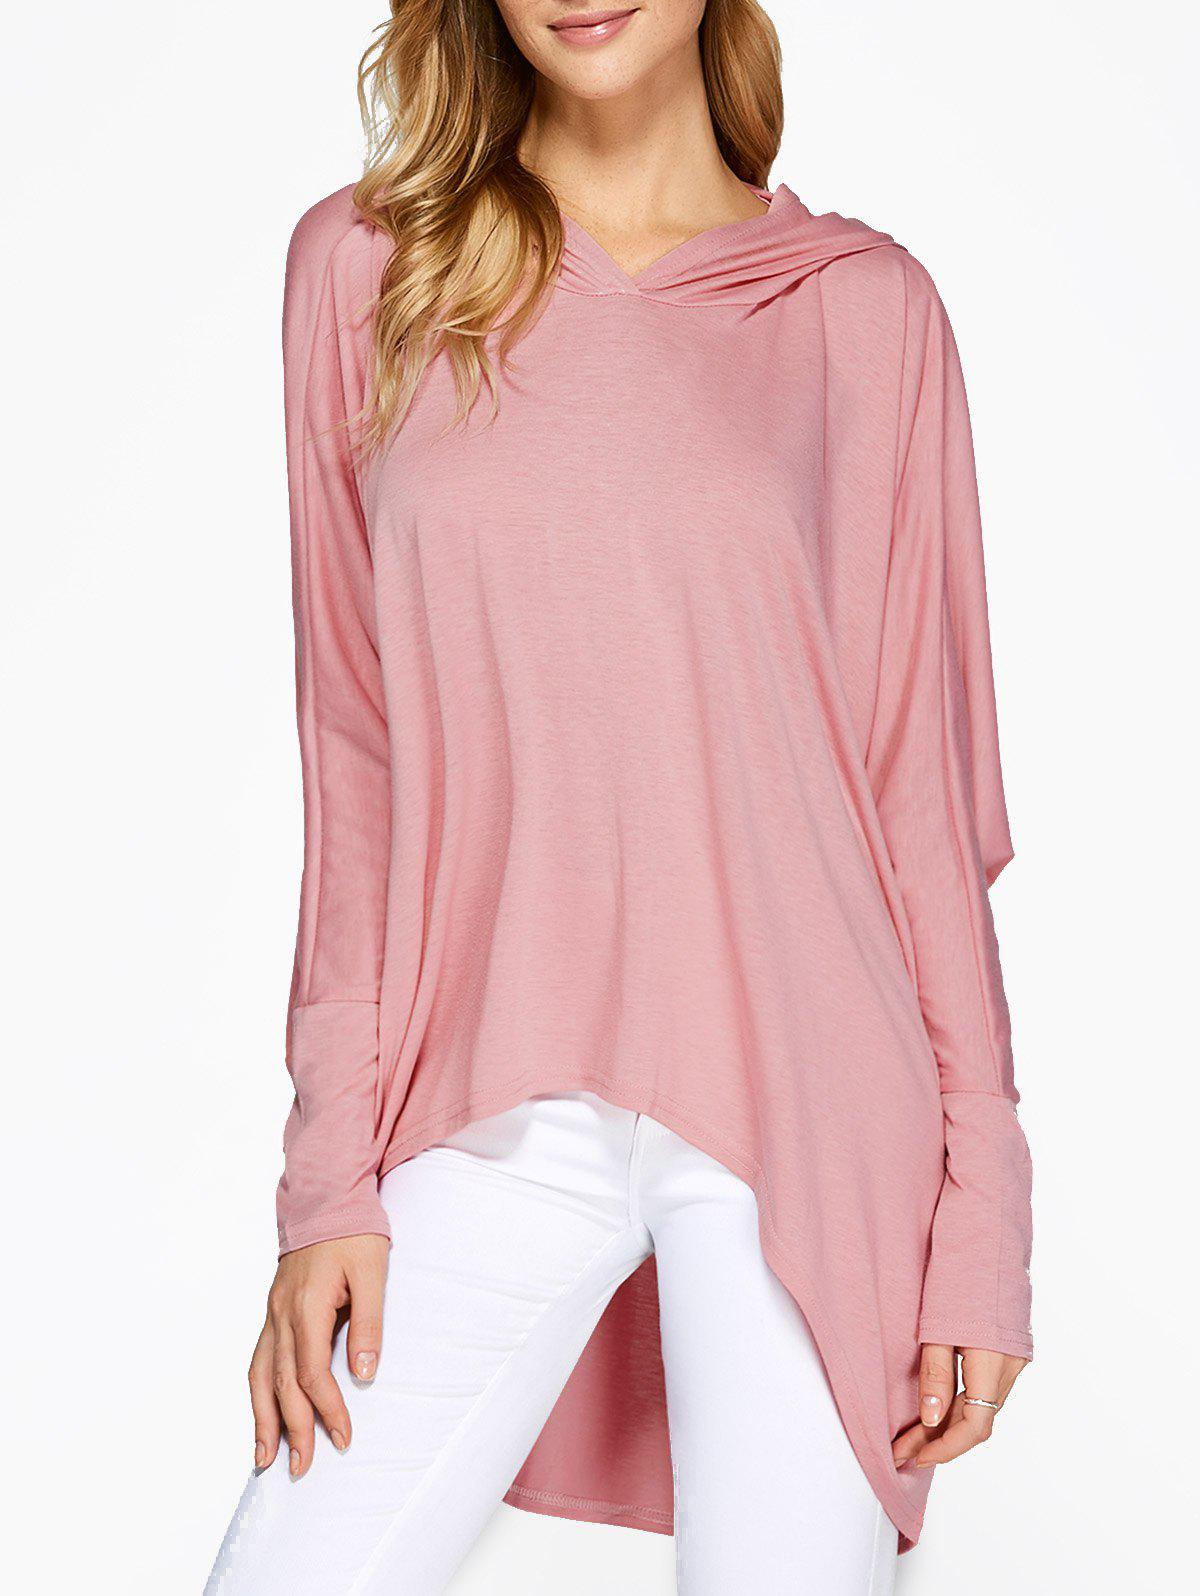 Hooded Batwing Sleeve High Low T-Shirt lace spliced batwing sleeve high low striped shirt